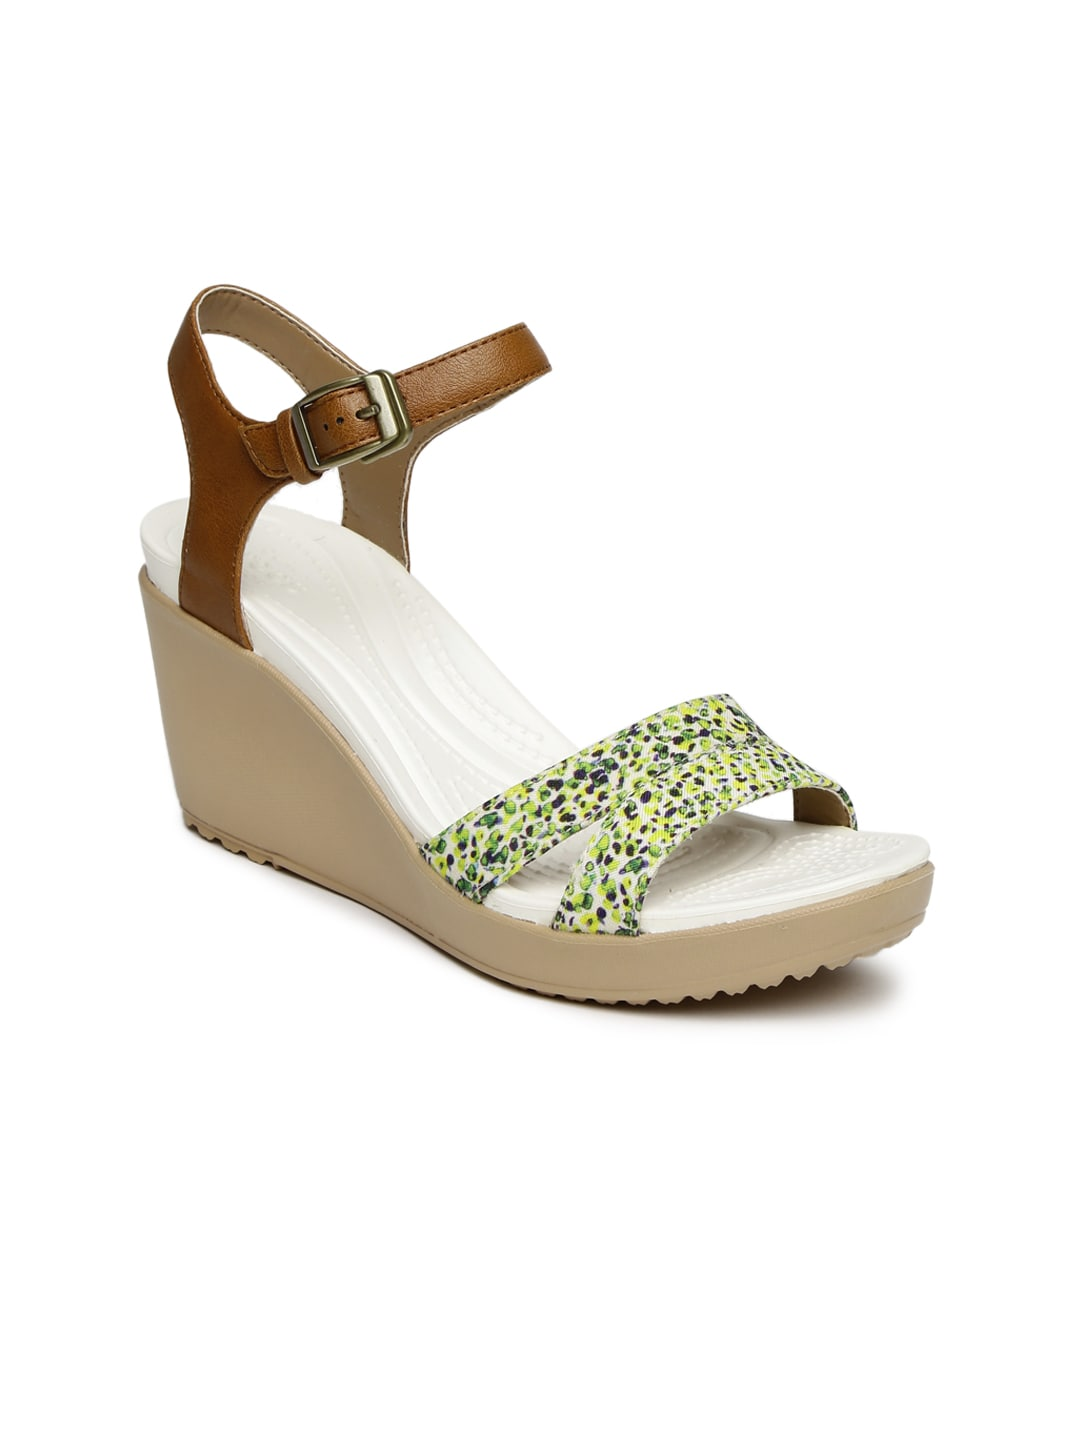 125791011d012 Crocs Wedges Footwear - Buy Crocs Wedges Footwear online in India